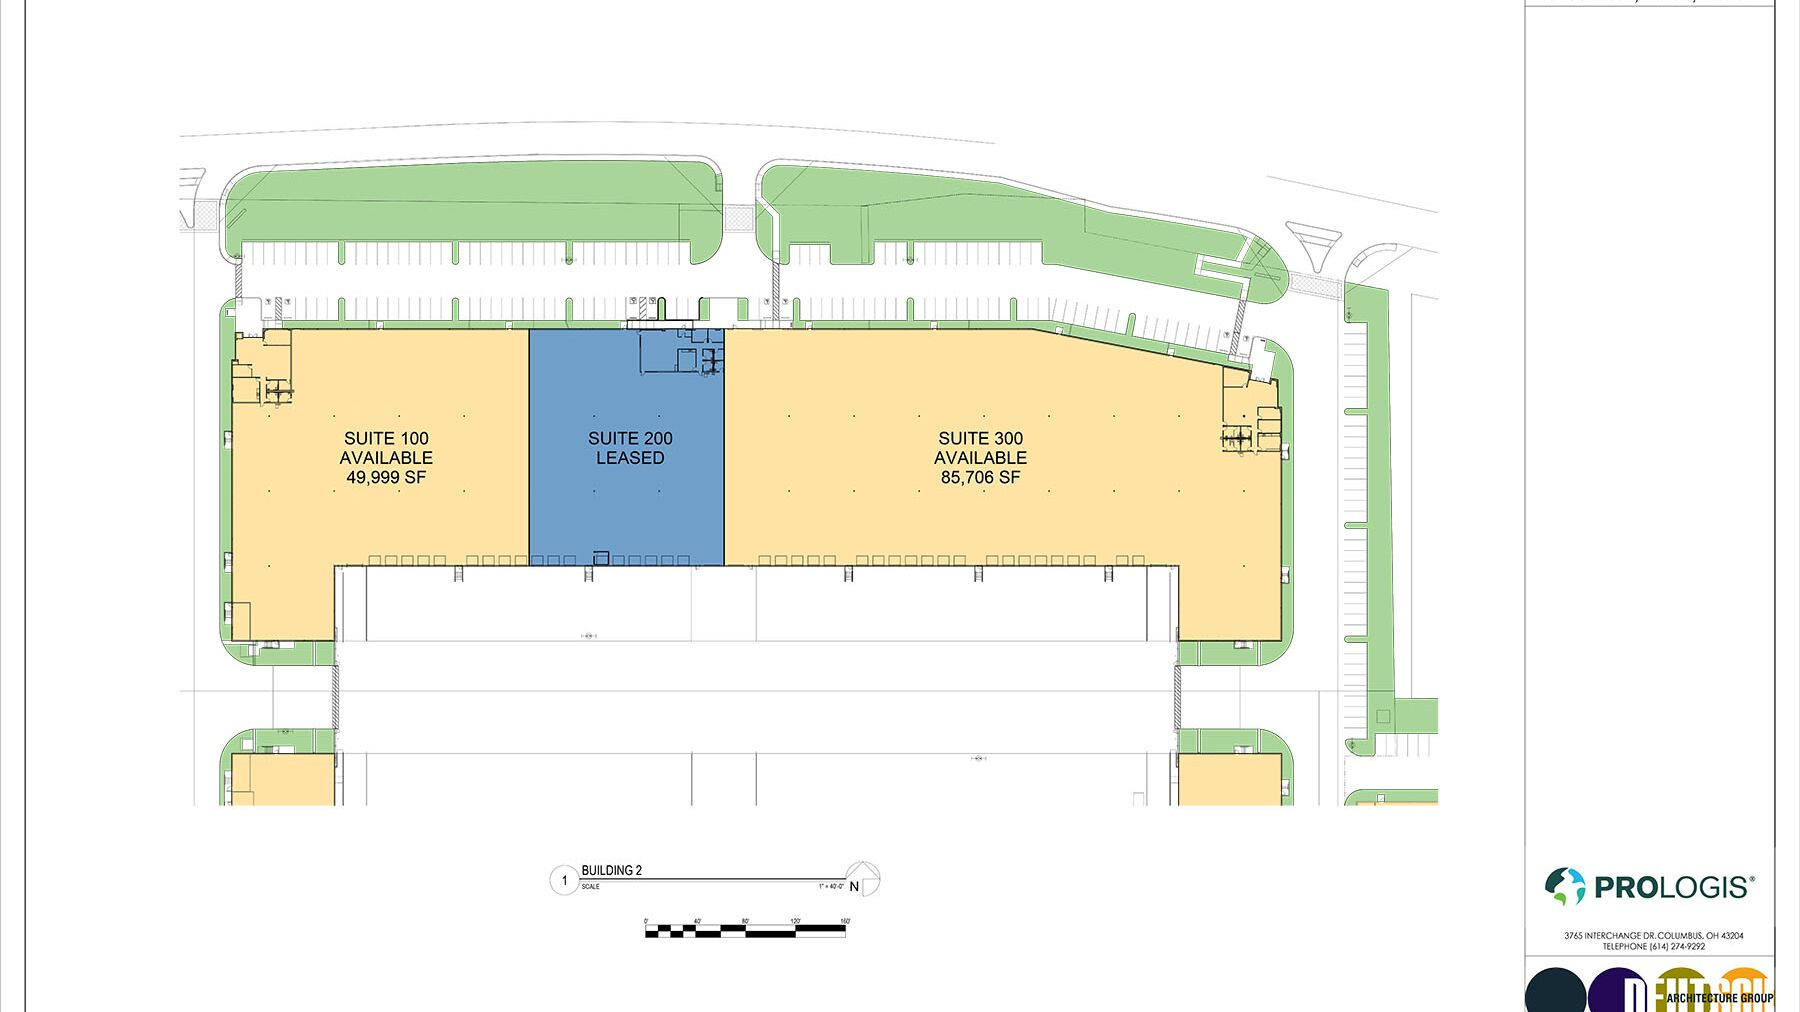 DPM-I-17-Logistics-Ctr-2-Site-Plan.jpg